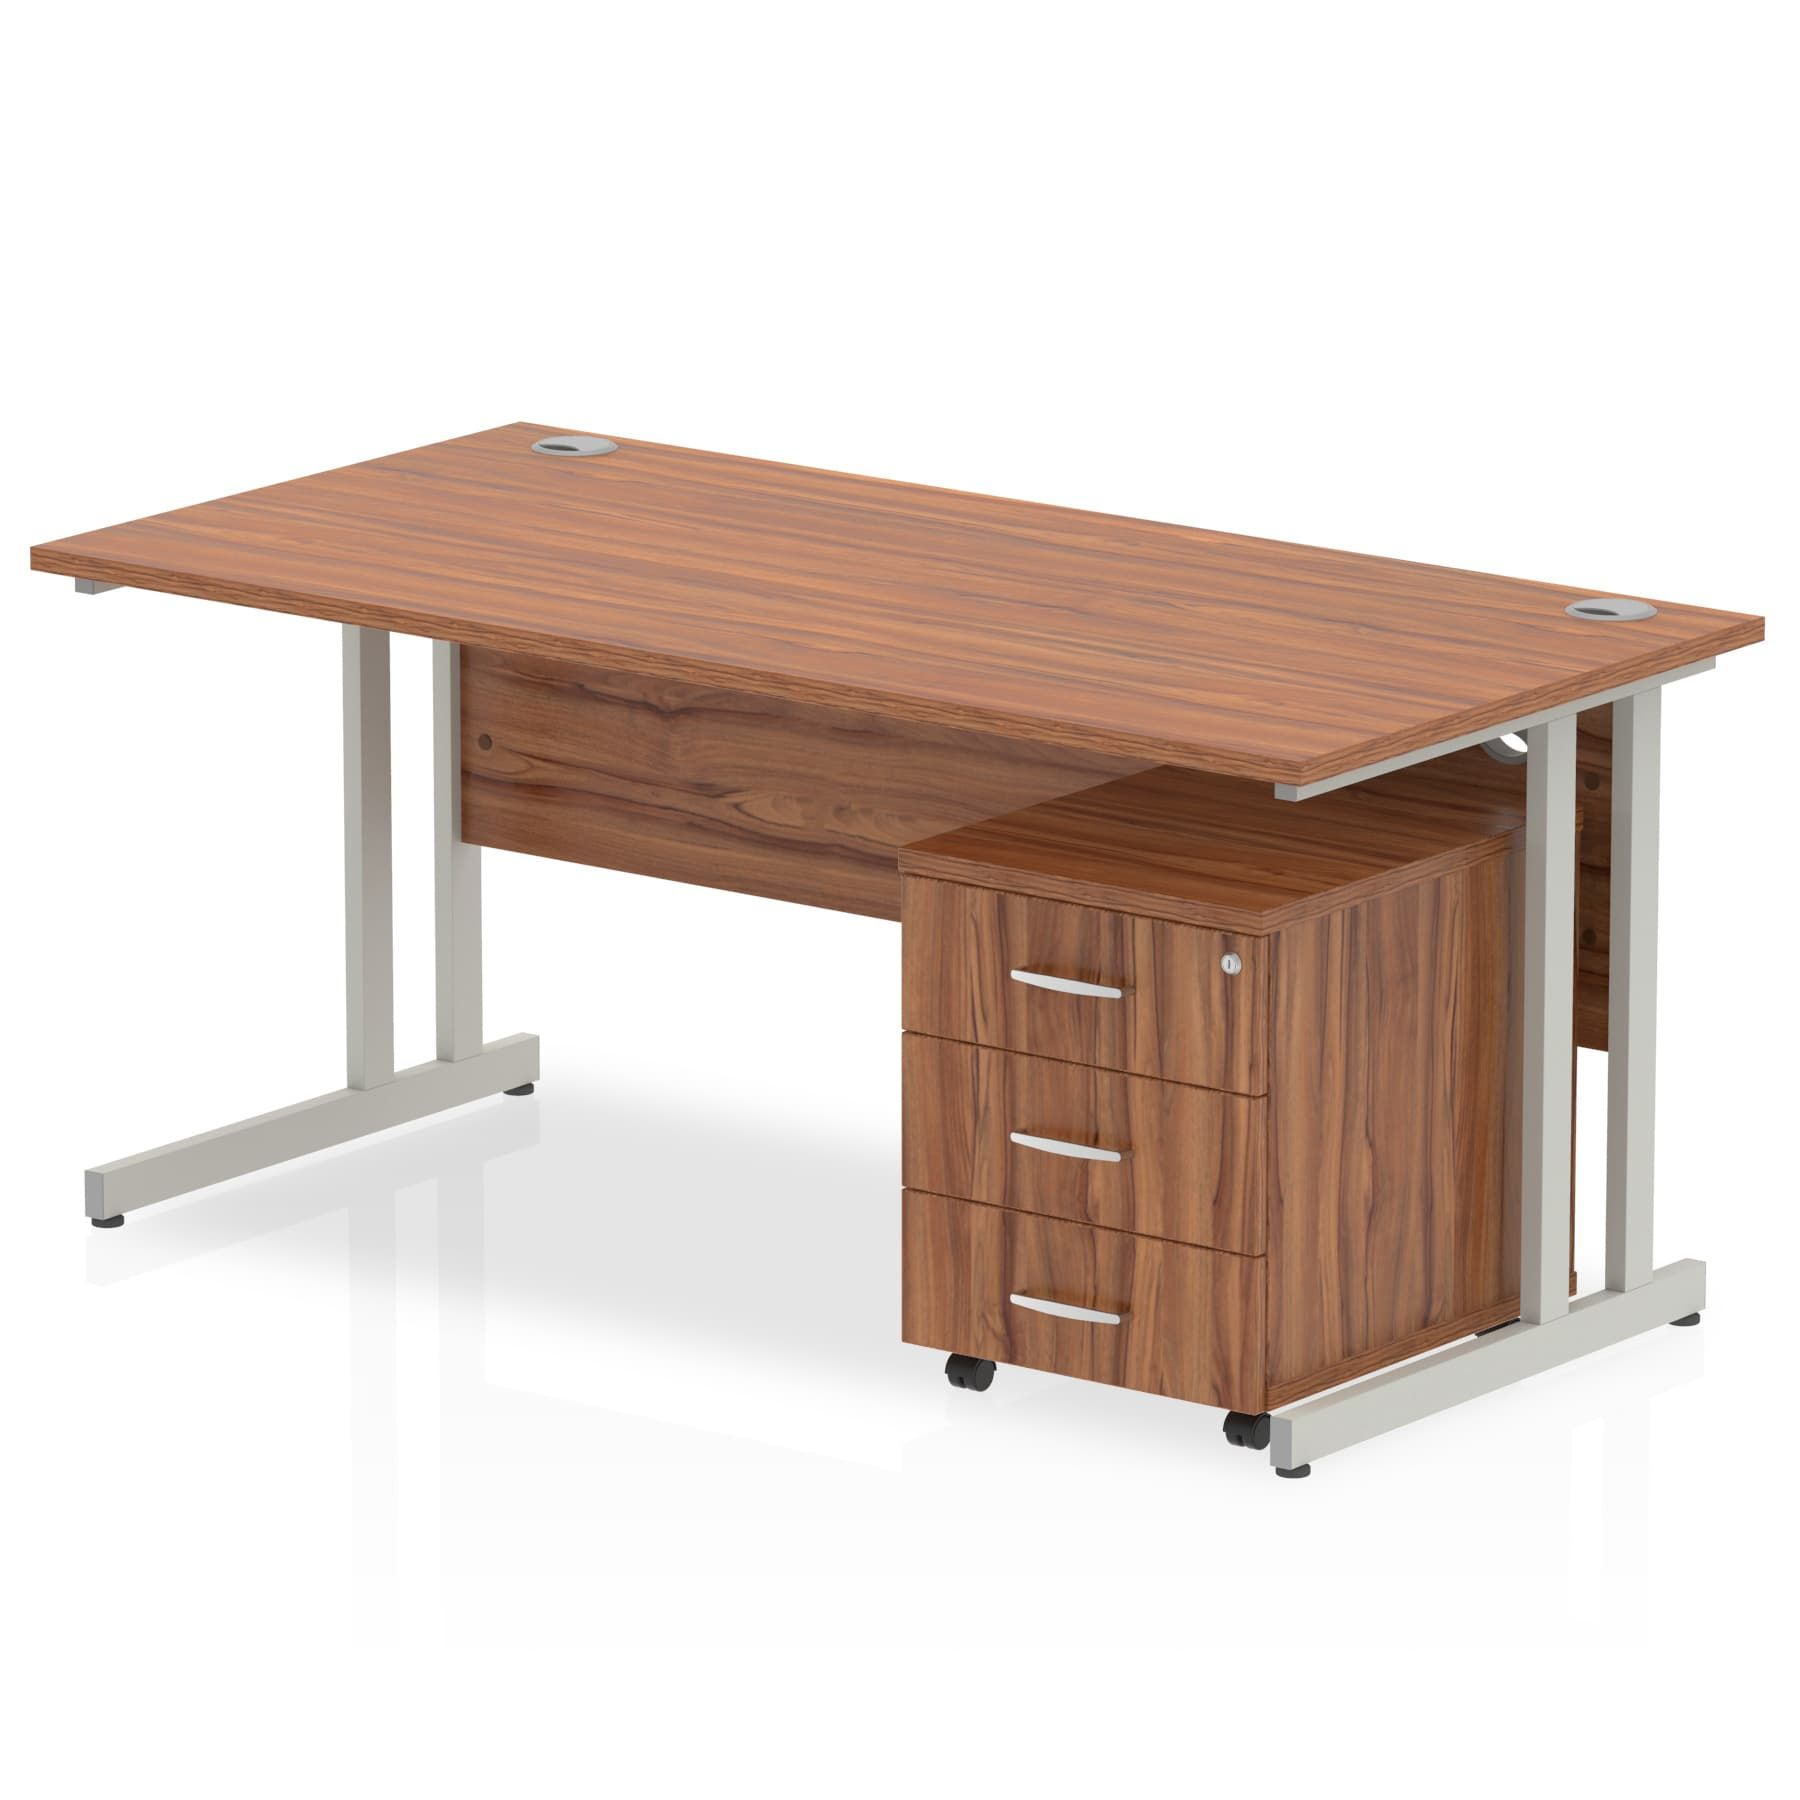 Walnut Straight Desk with 3 Drawer mobile pedestal